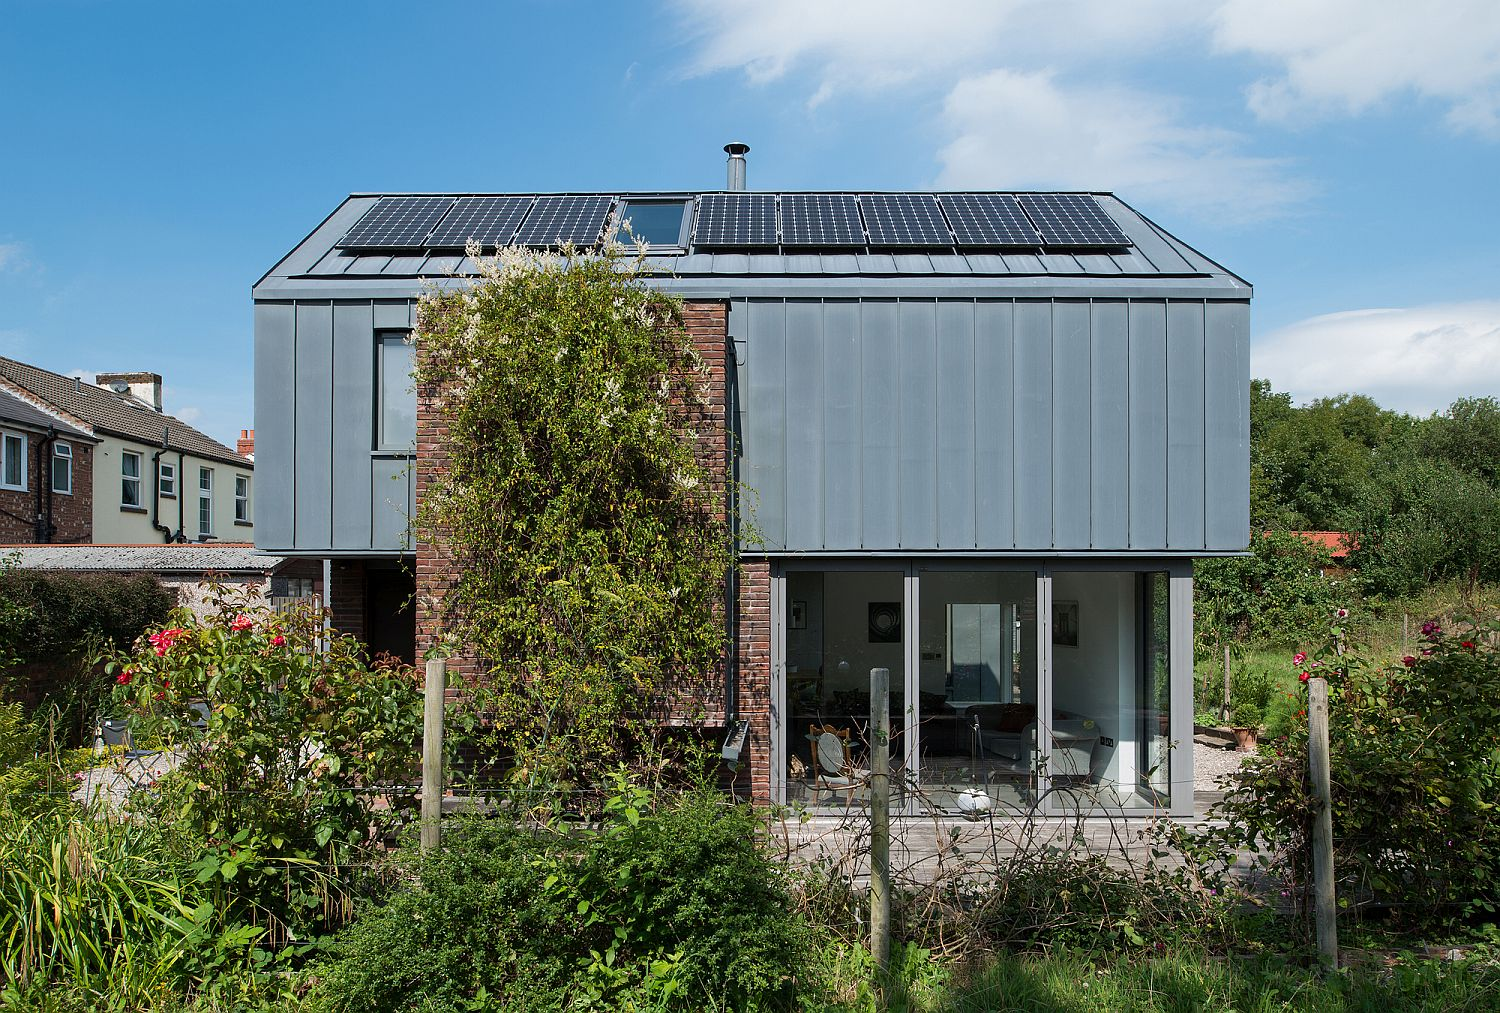 Greenery-around-the-house-gives-it-natural-shade-while-reducing-carbon-footprint